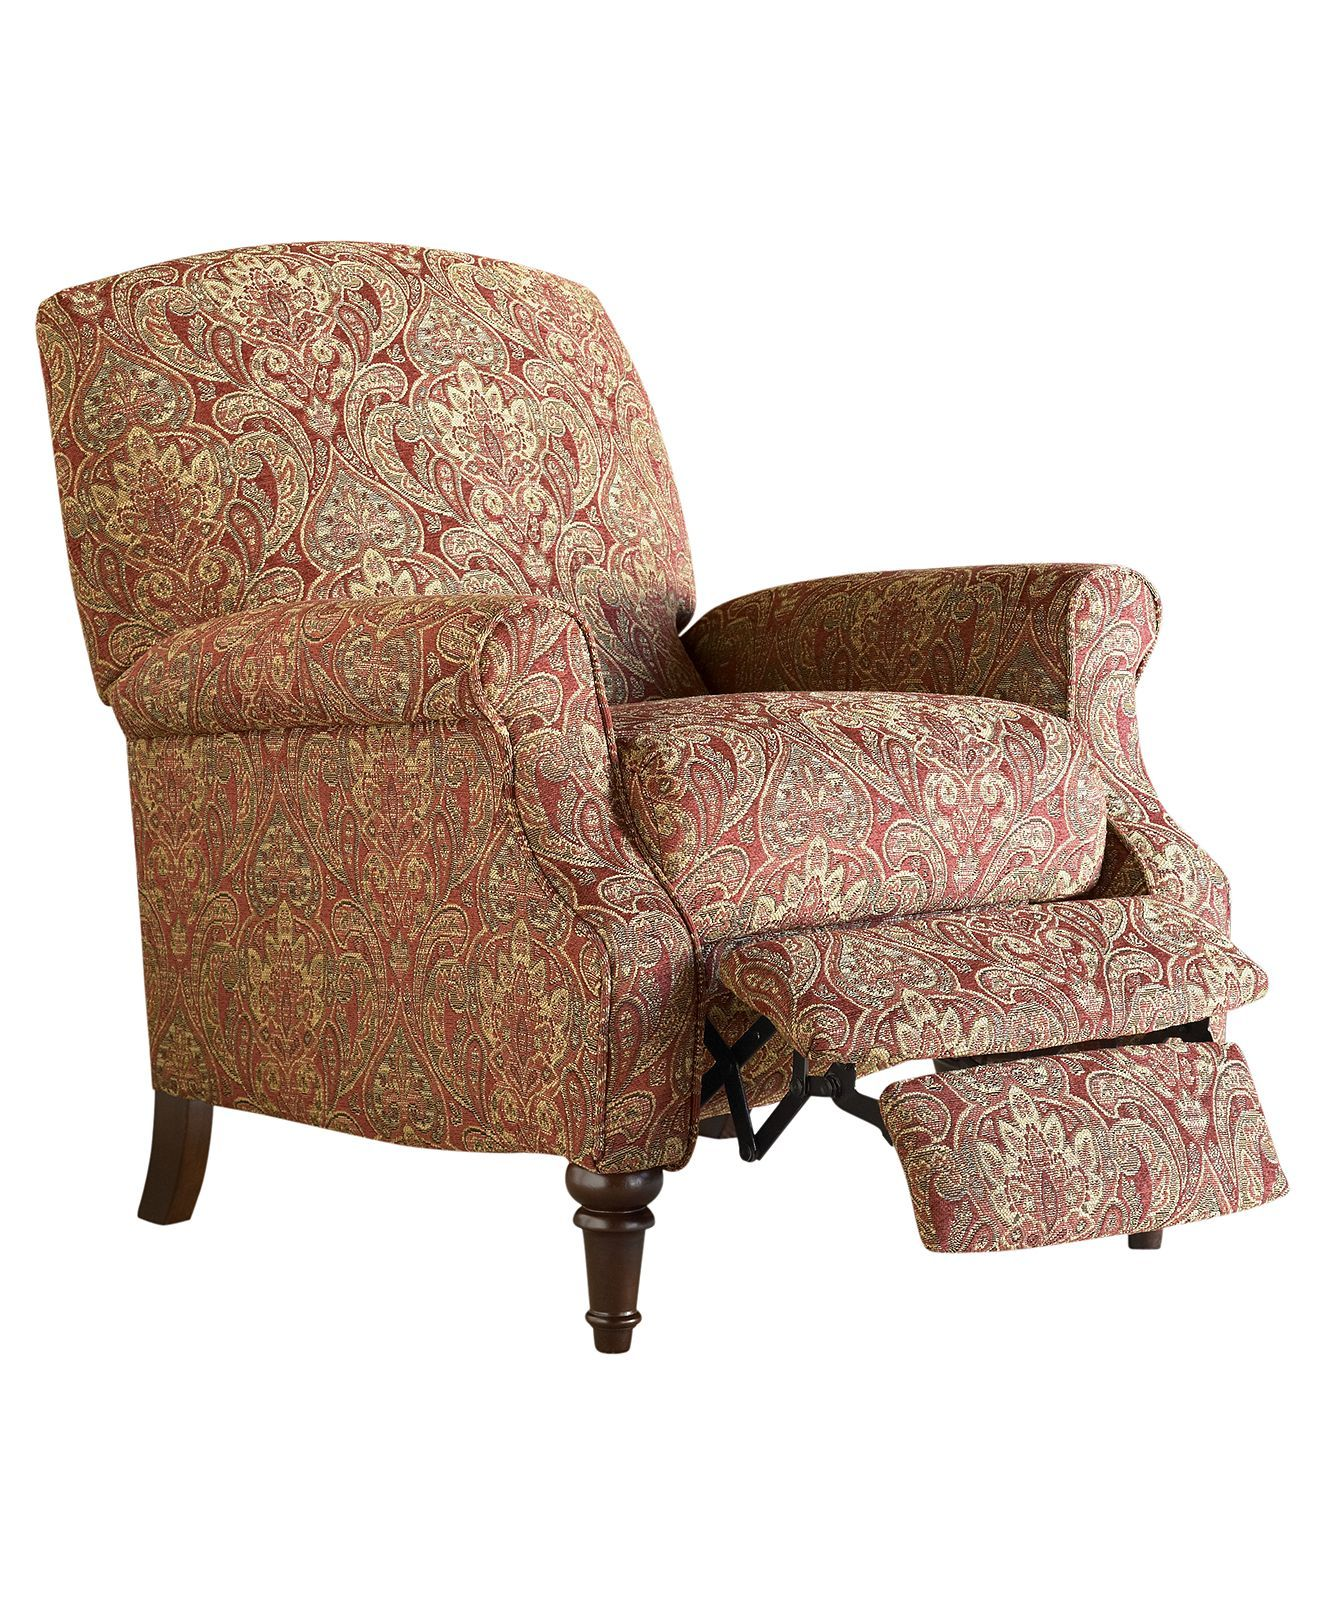 Chloe Recliner Chair High Leg Country Style Chairs